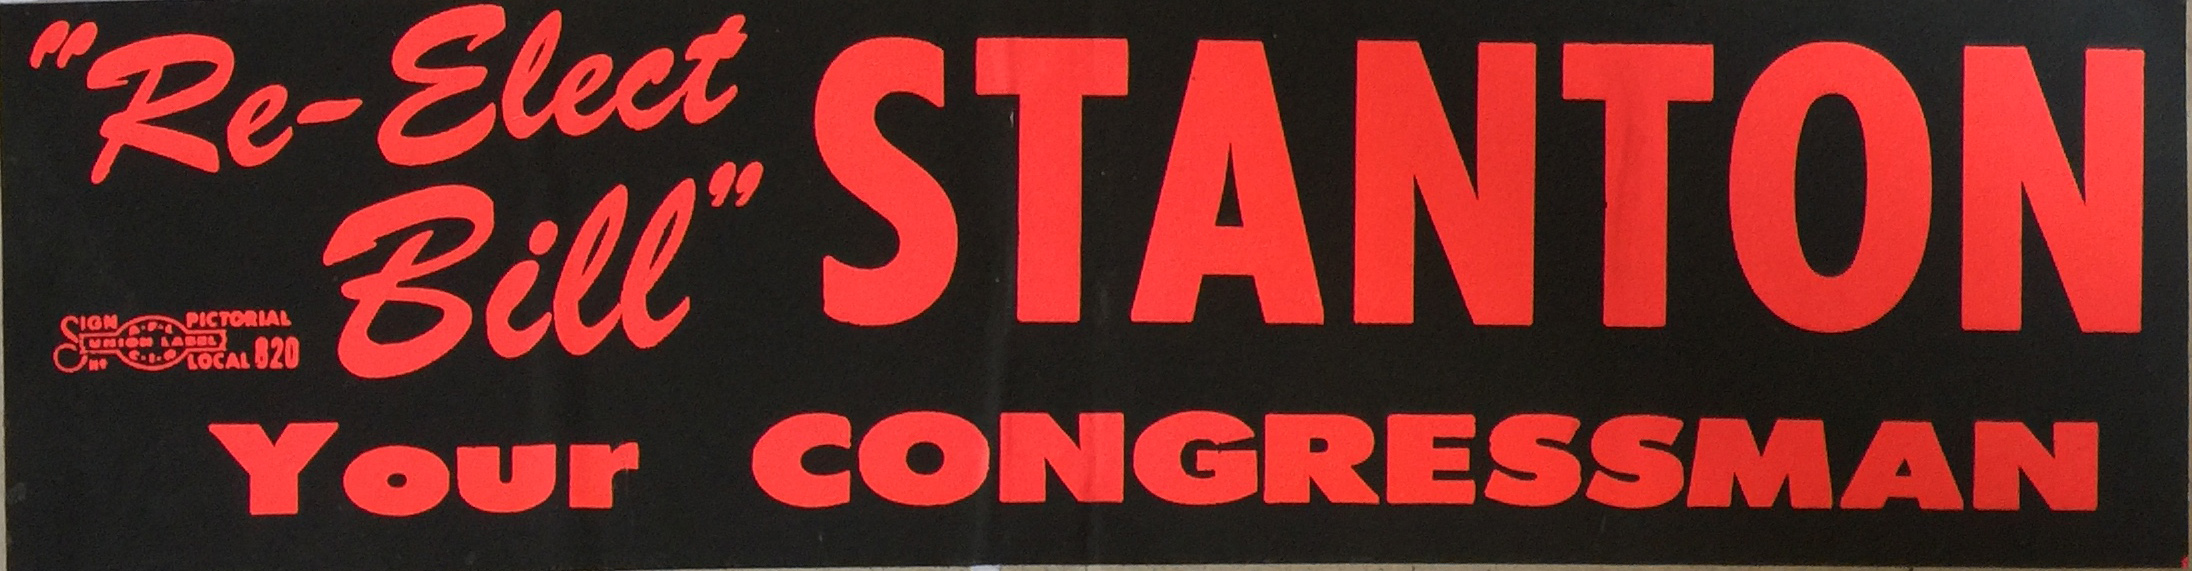 Sticker-congress STANTON.jpg